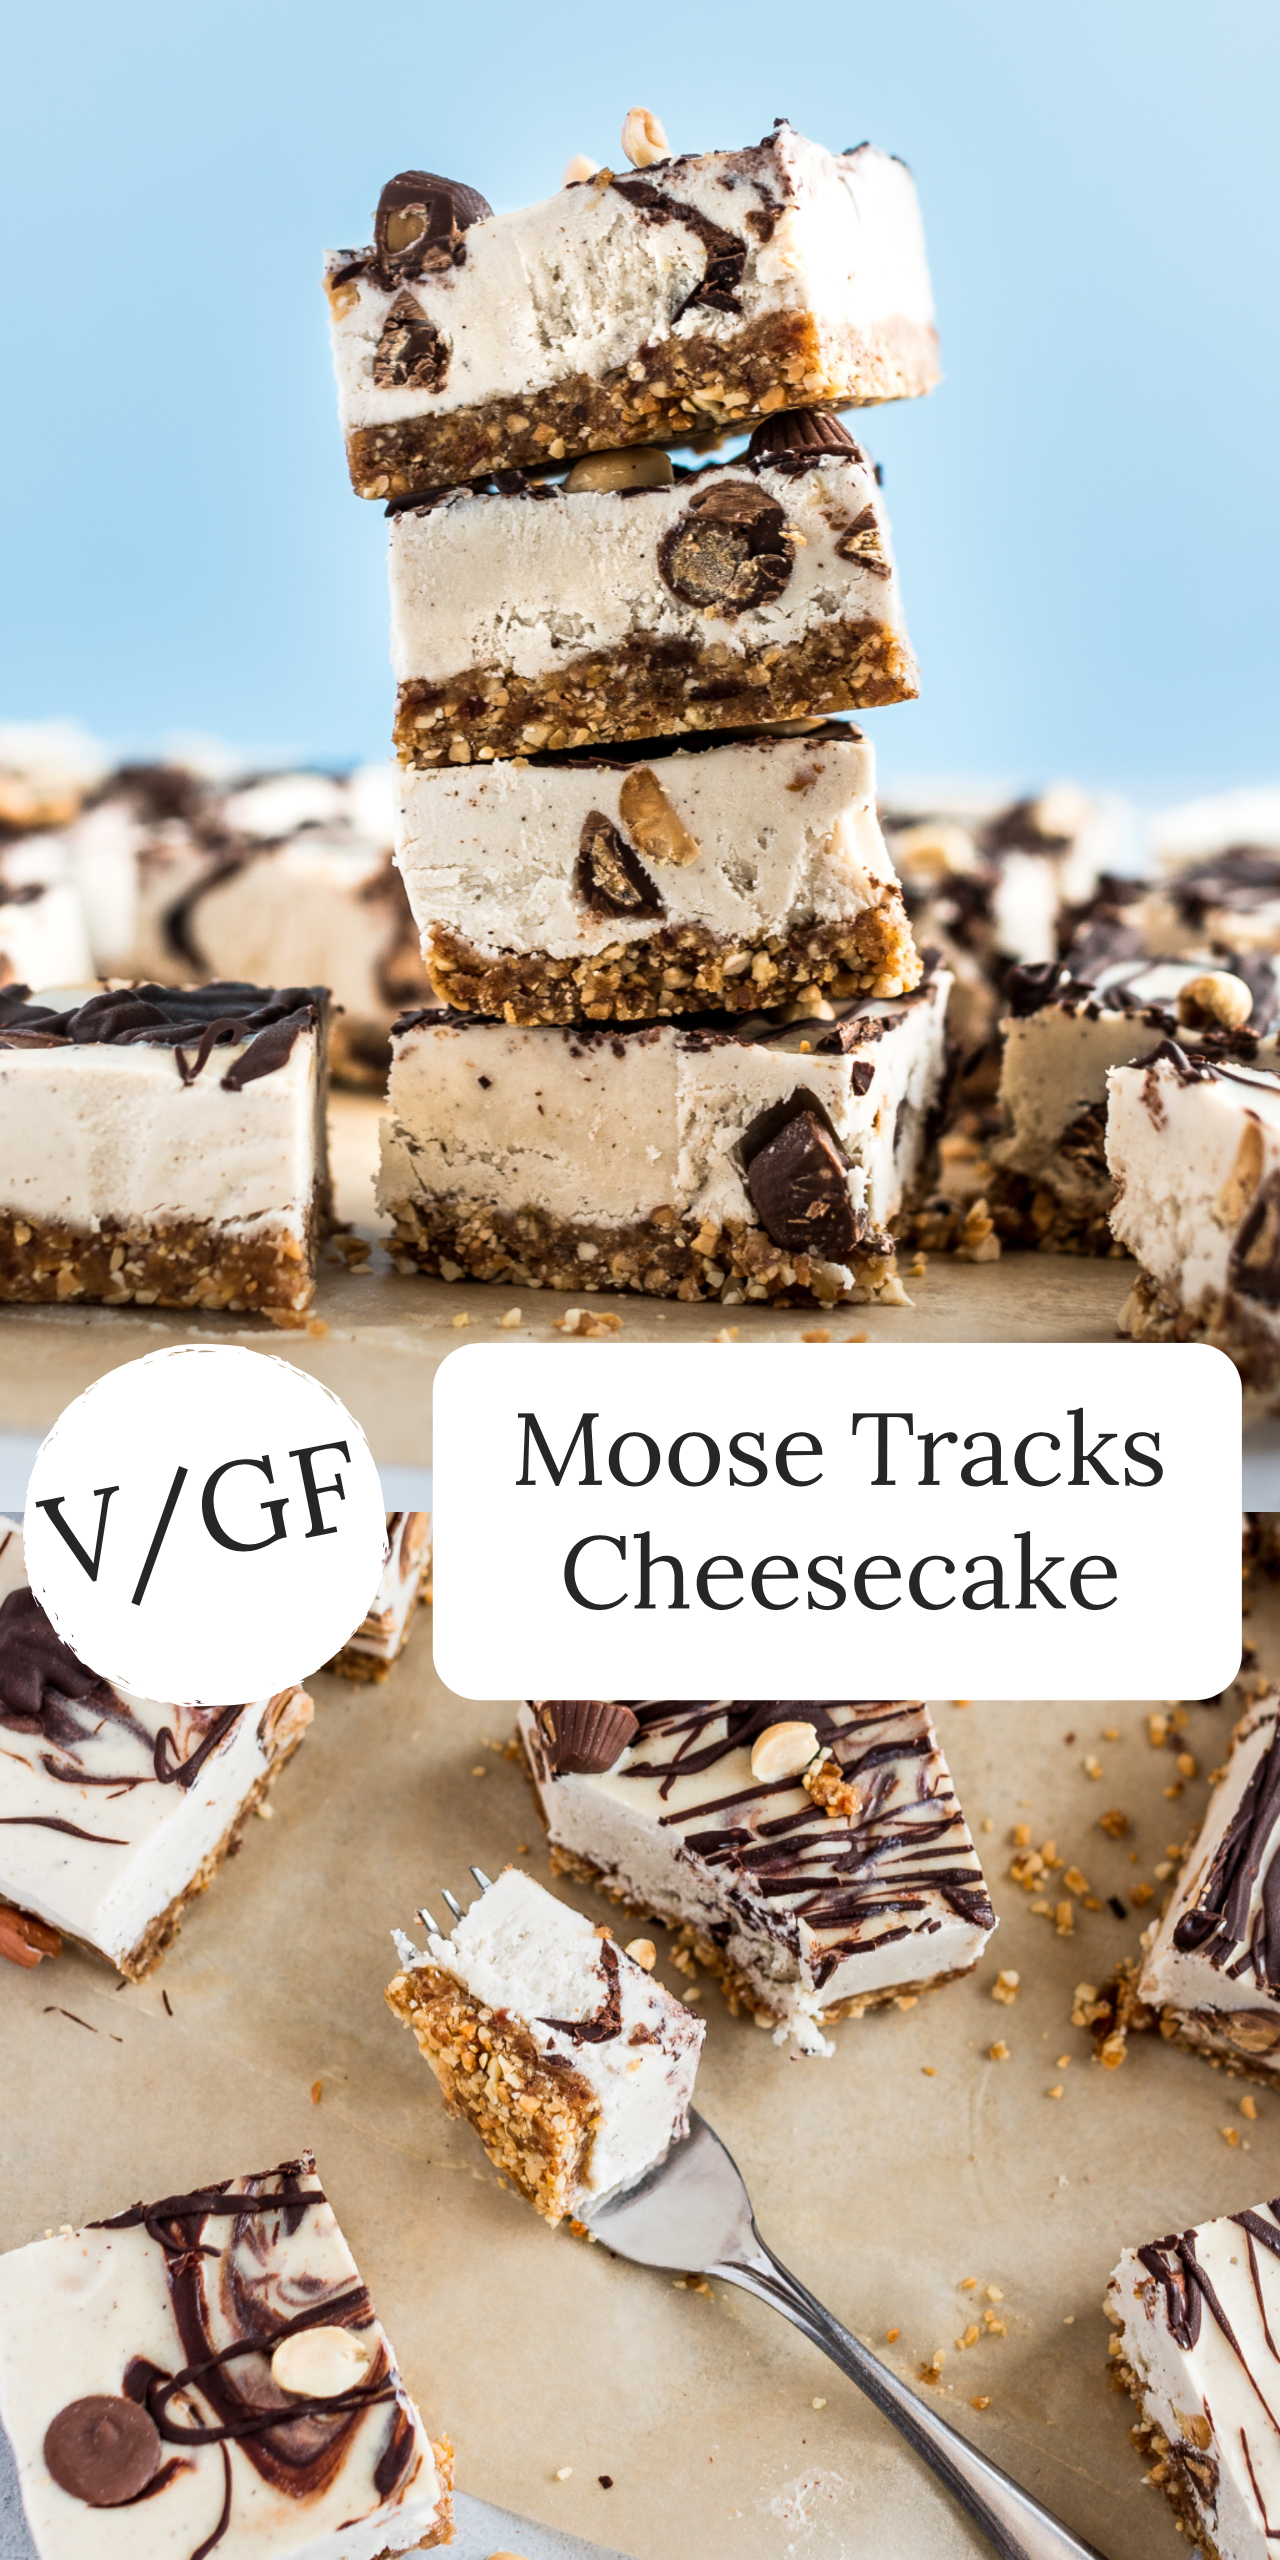 This Vegan Moose Tracks Cheesecake is super delicious, creamy, and packed with peanut butter cups, peanuts, and chocolate, making it a decadent dessert! #vegan #dessert #feed #vegancheesecake #moosetracks